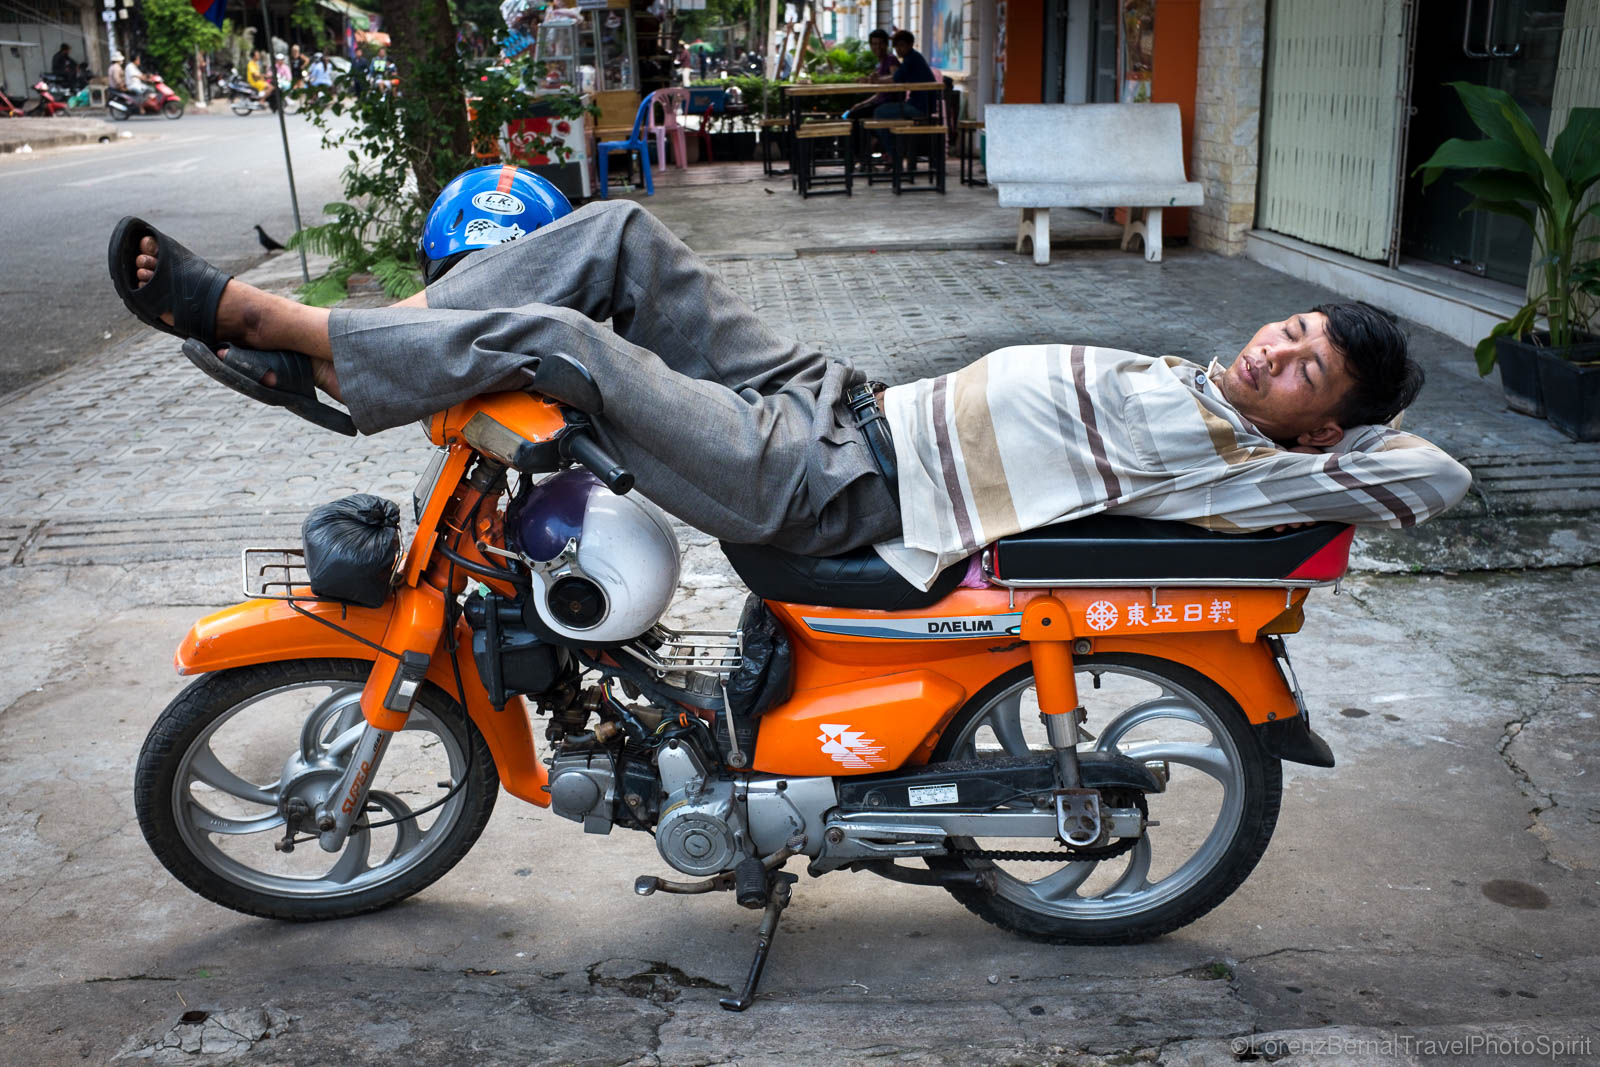 Moto-taxi driver sleeping on his motorbike in Phnom Penh, Cambodia